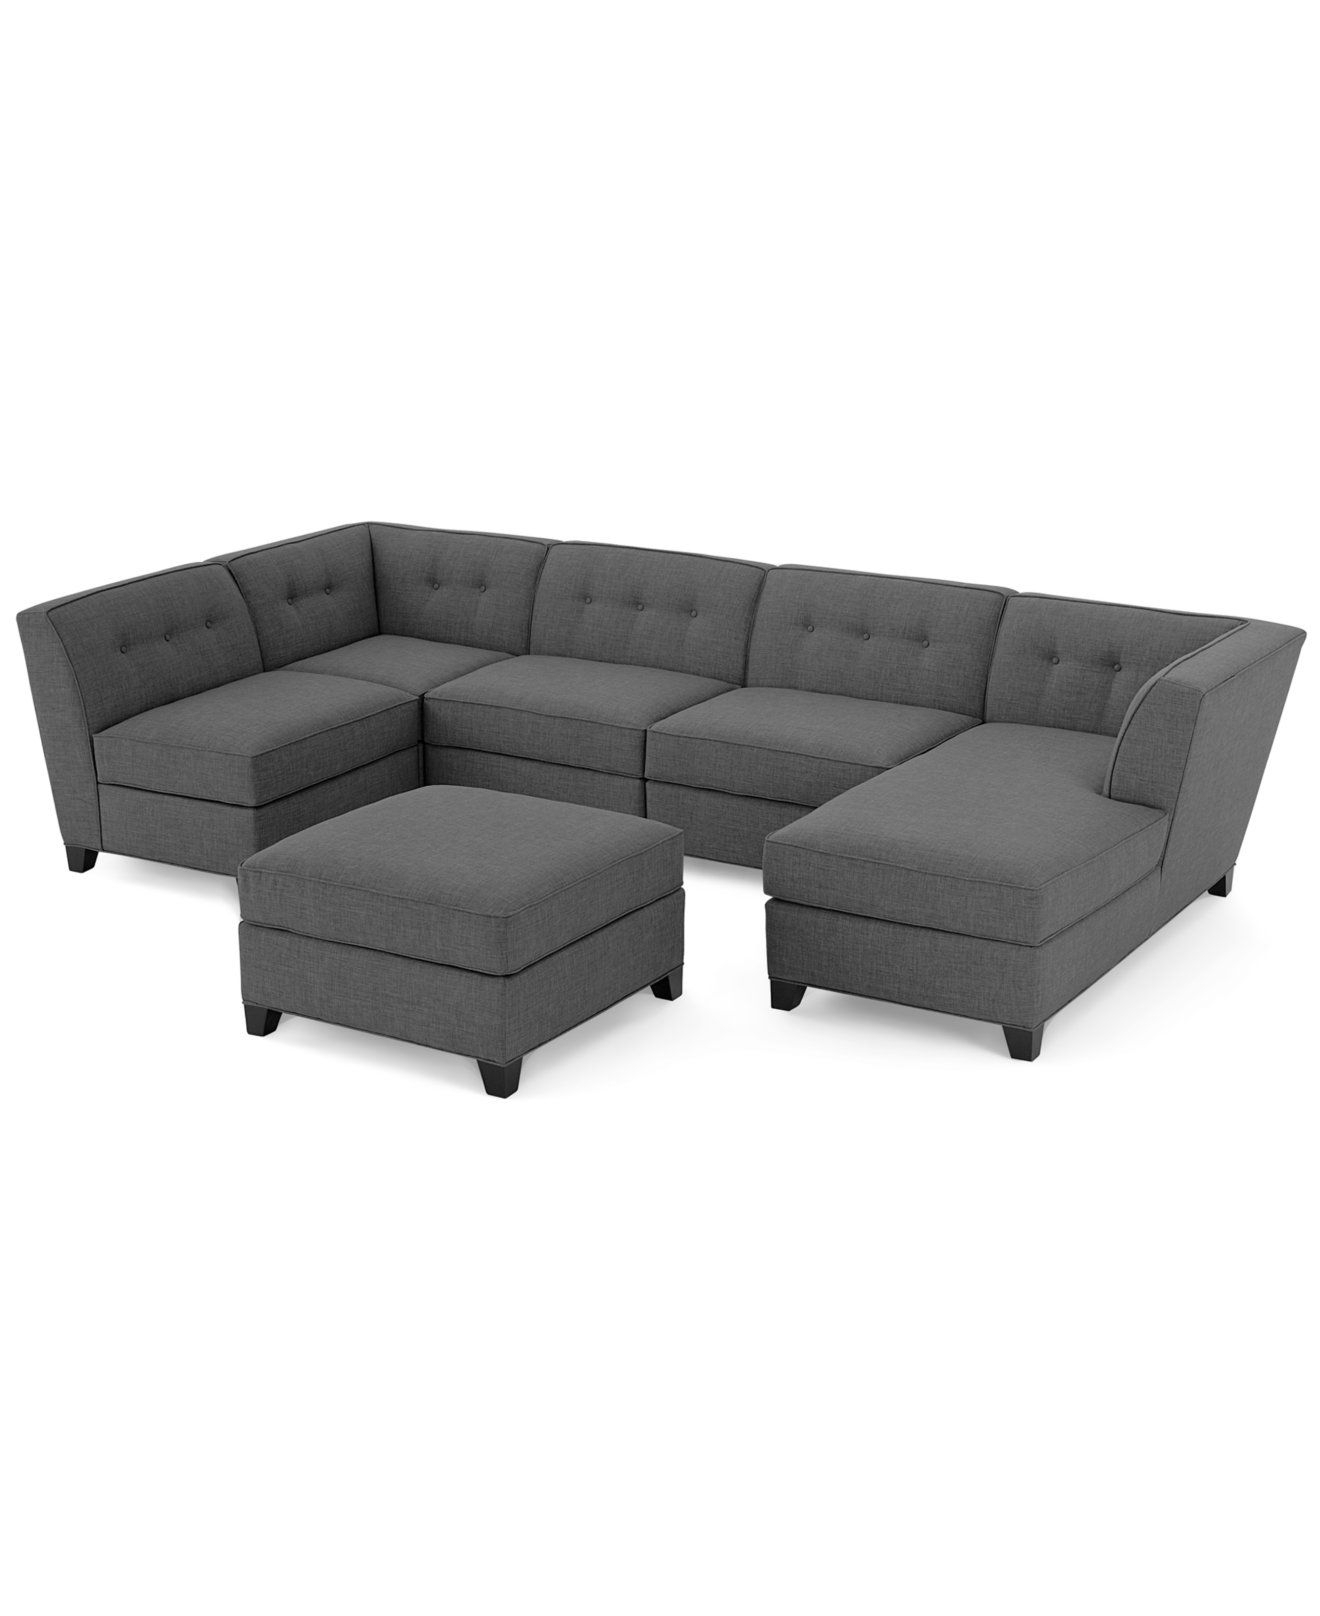 Harper Fabric Modular Sectional Sofa, 6 Piece (Square Corner Unit for Harper Down Oversized Sofa Chairs